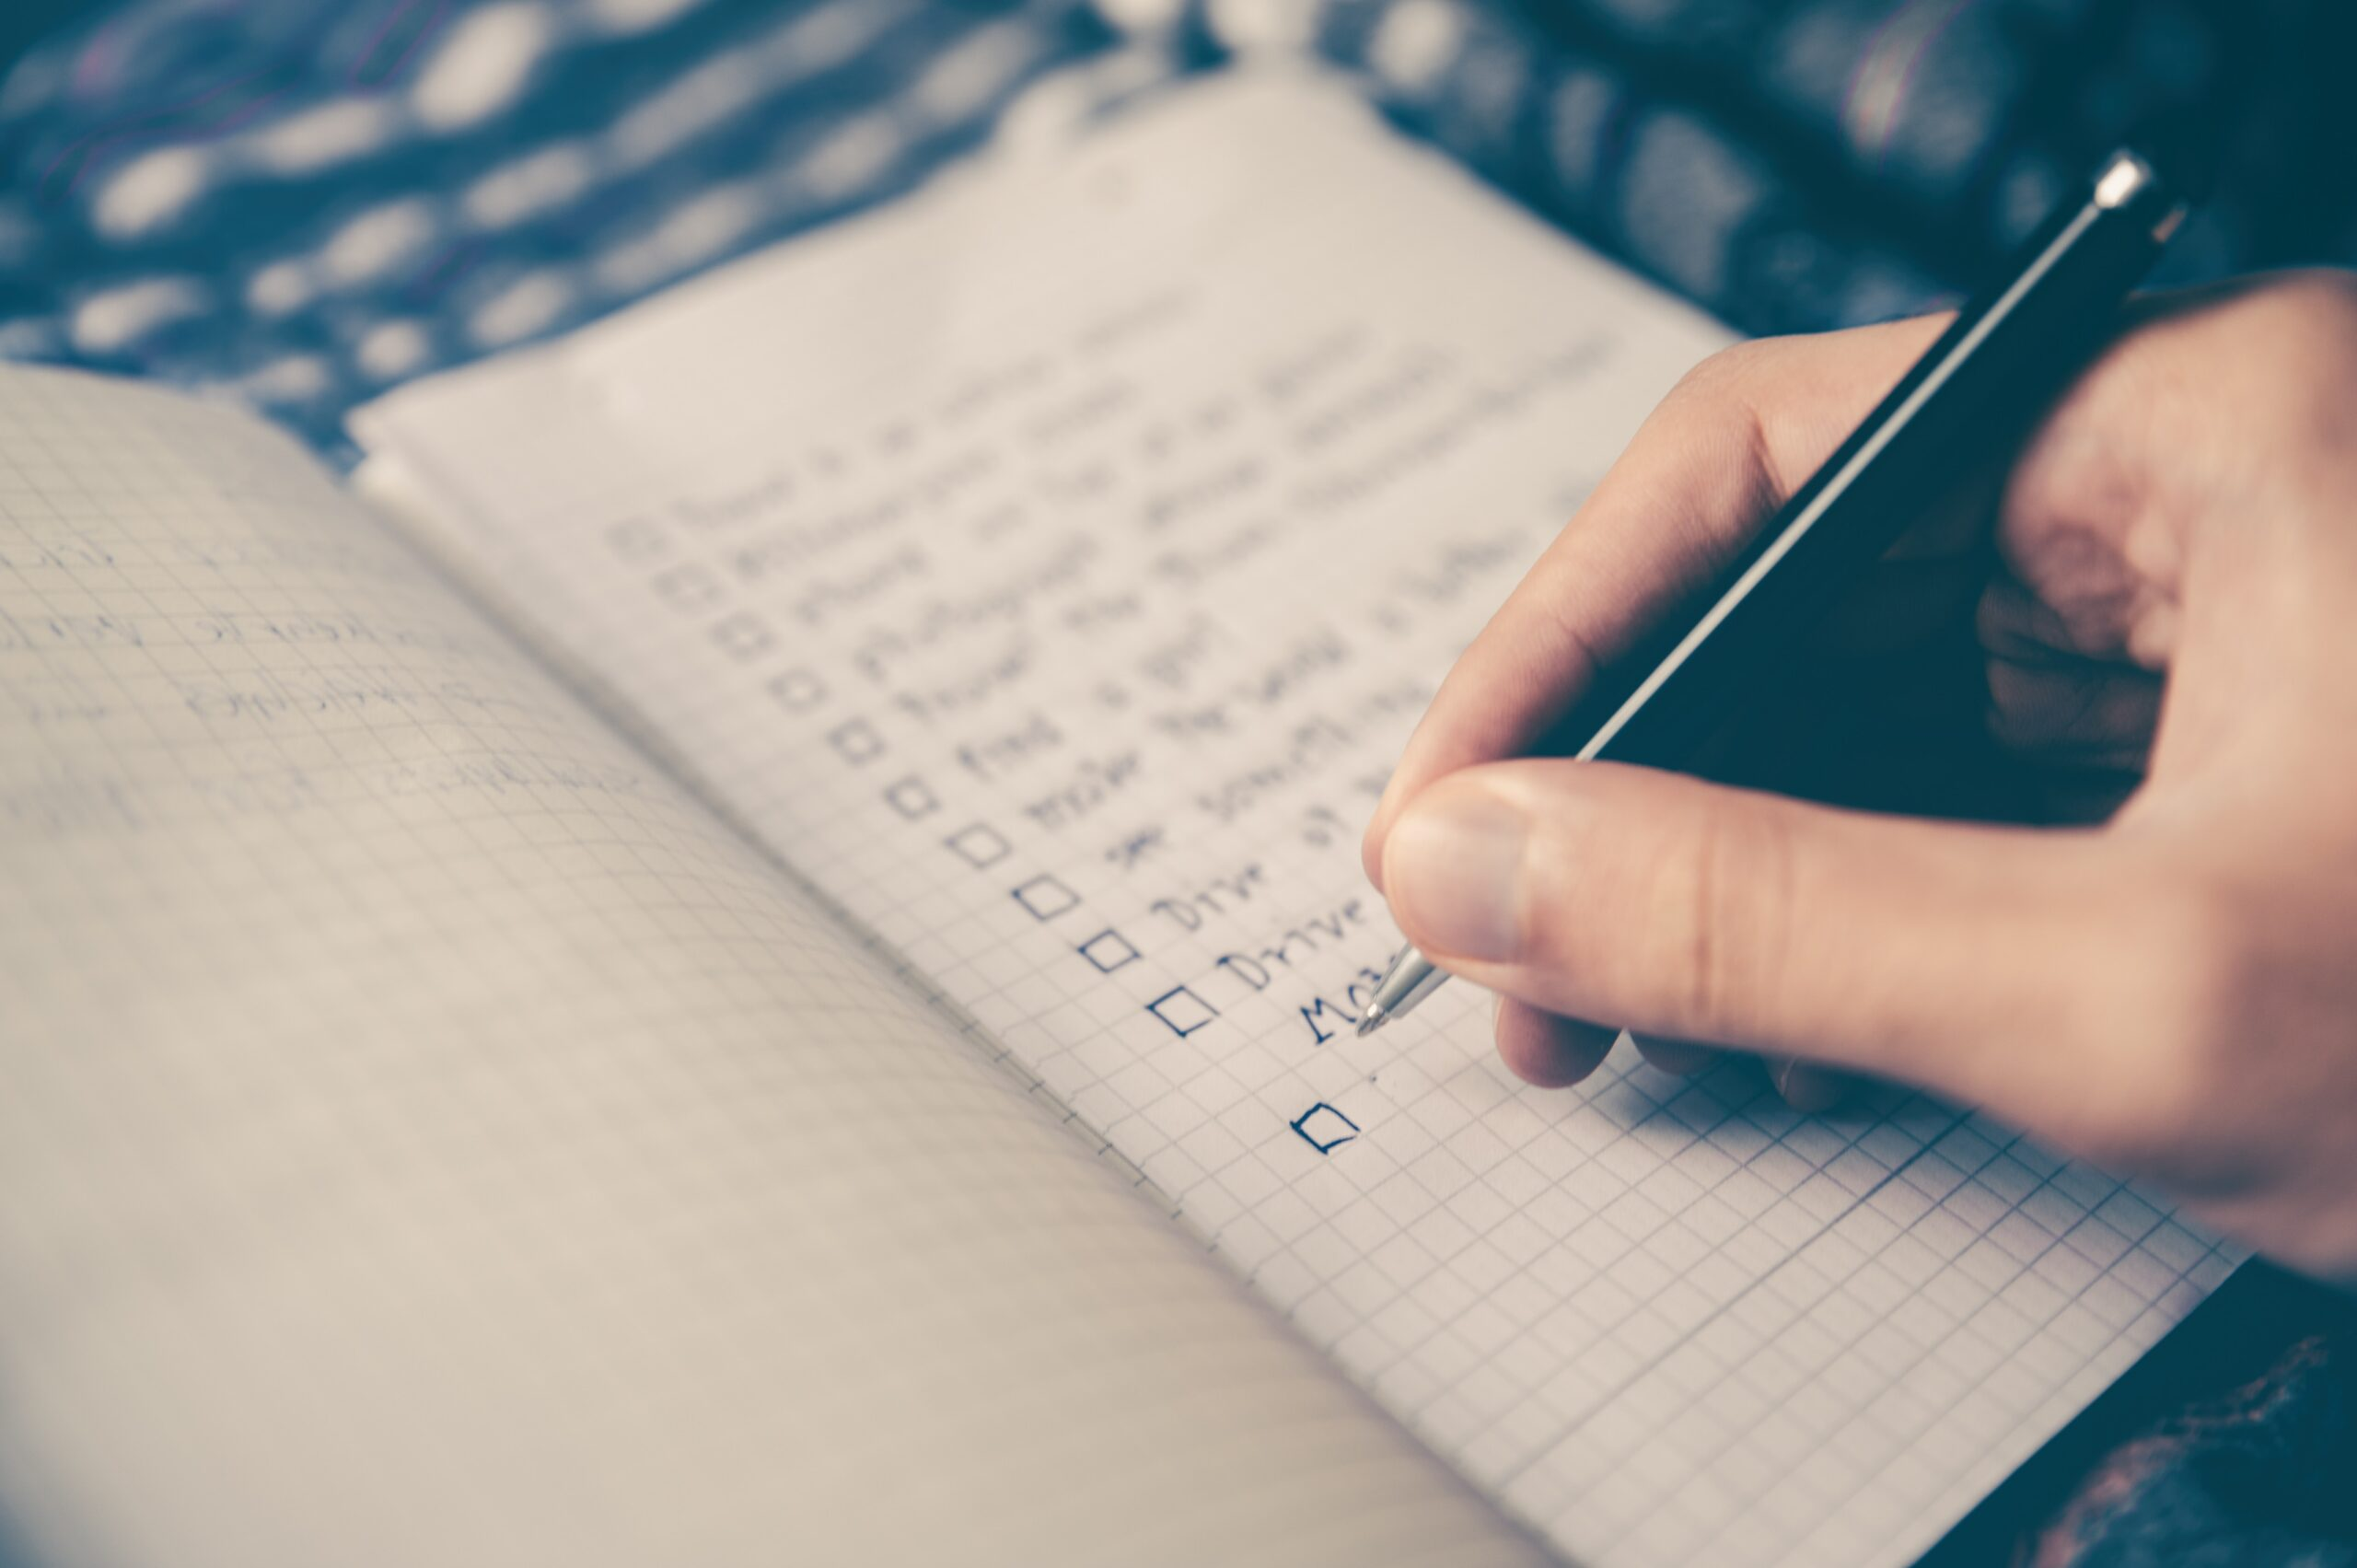 Person creating a list of necessary components with a pen on paper.